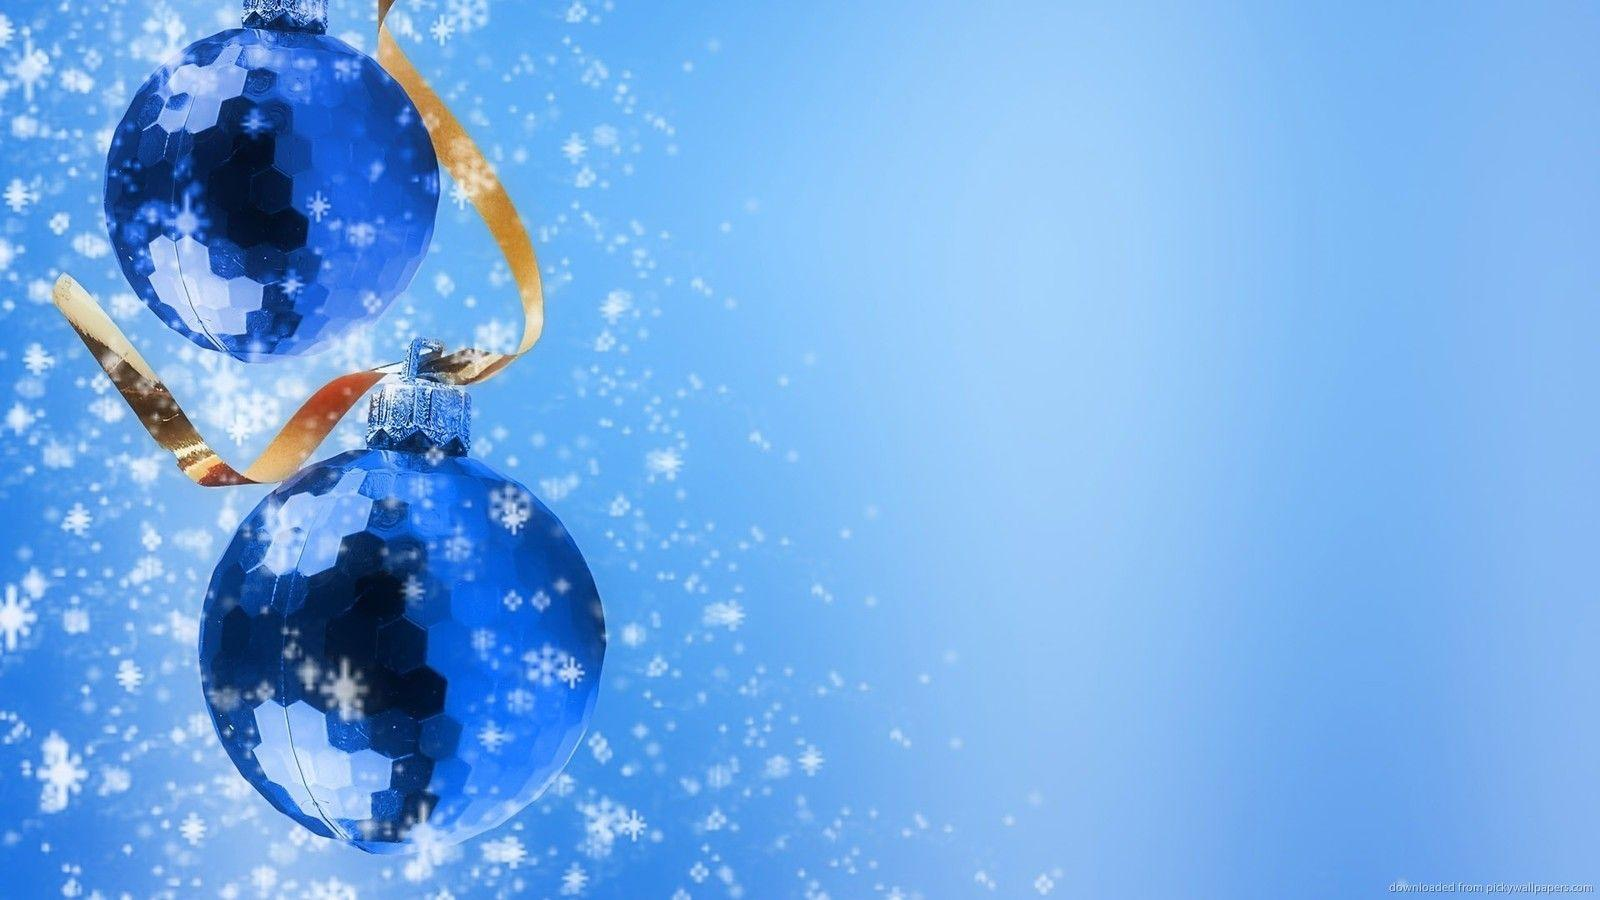 Wallpapers For Blue Christmas Background Wallpaper